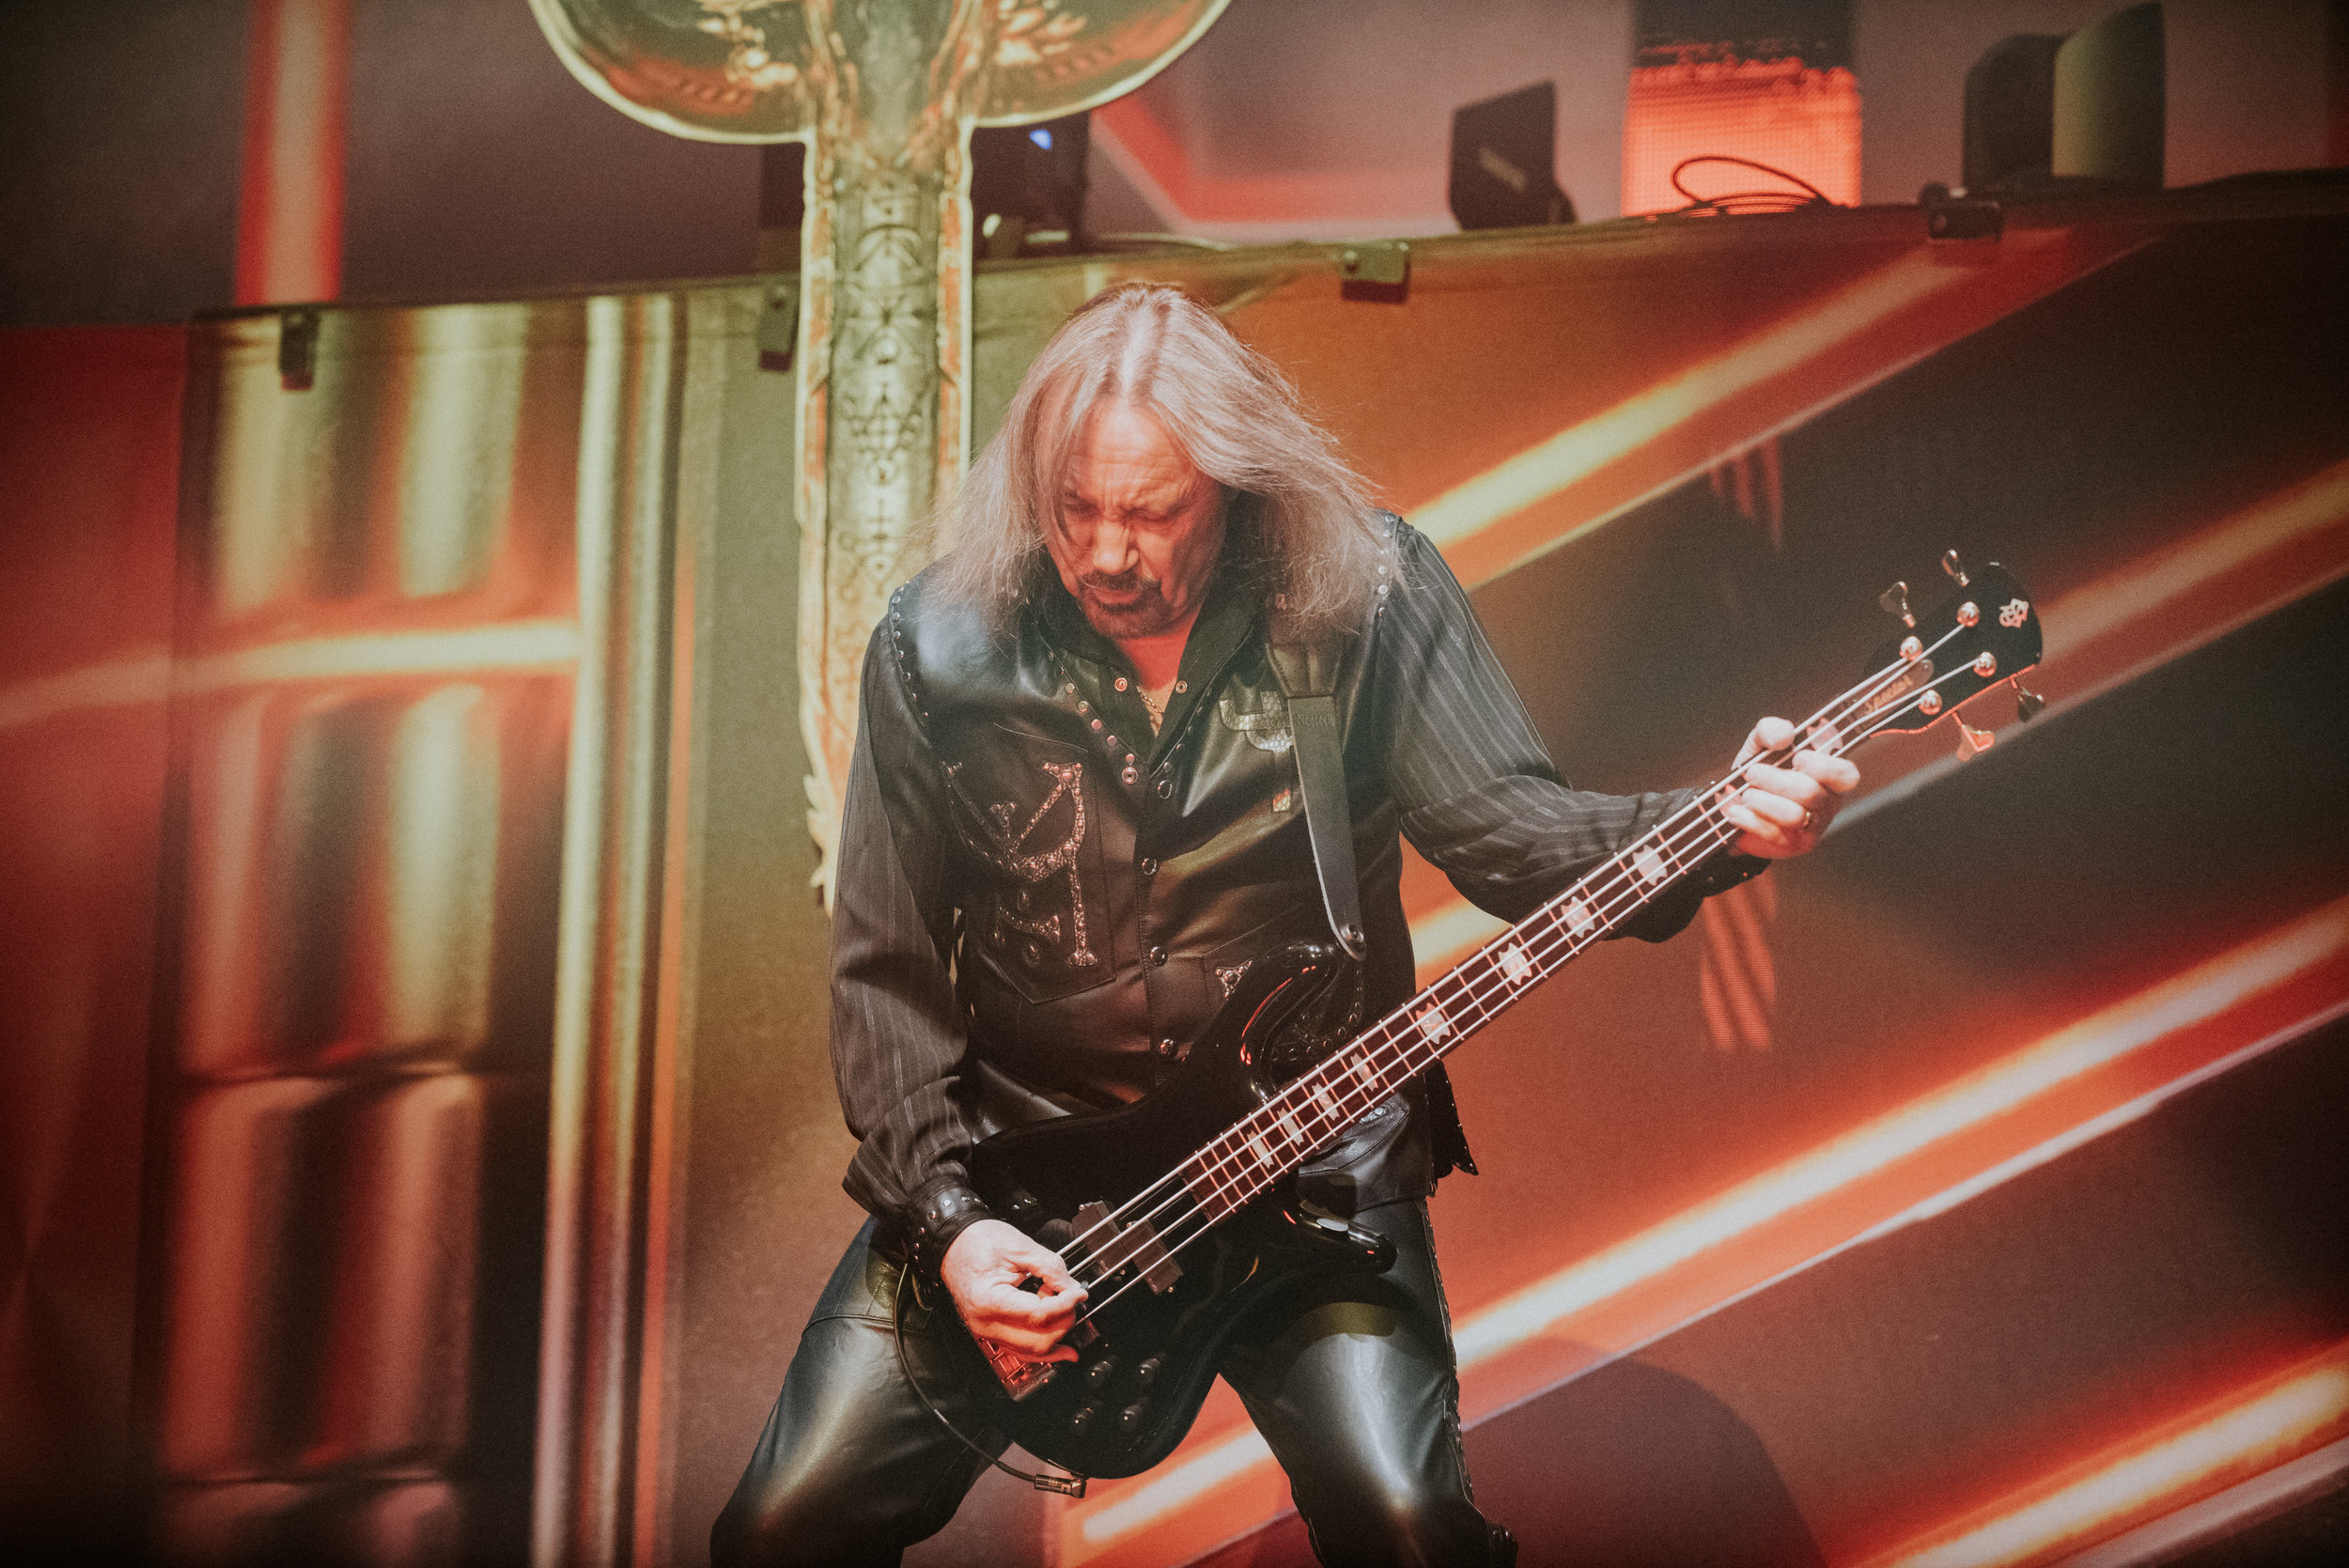 Judas Priest - Print-8.jpg